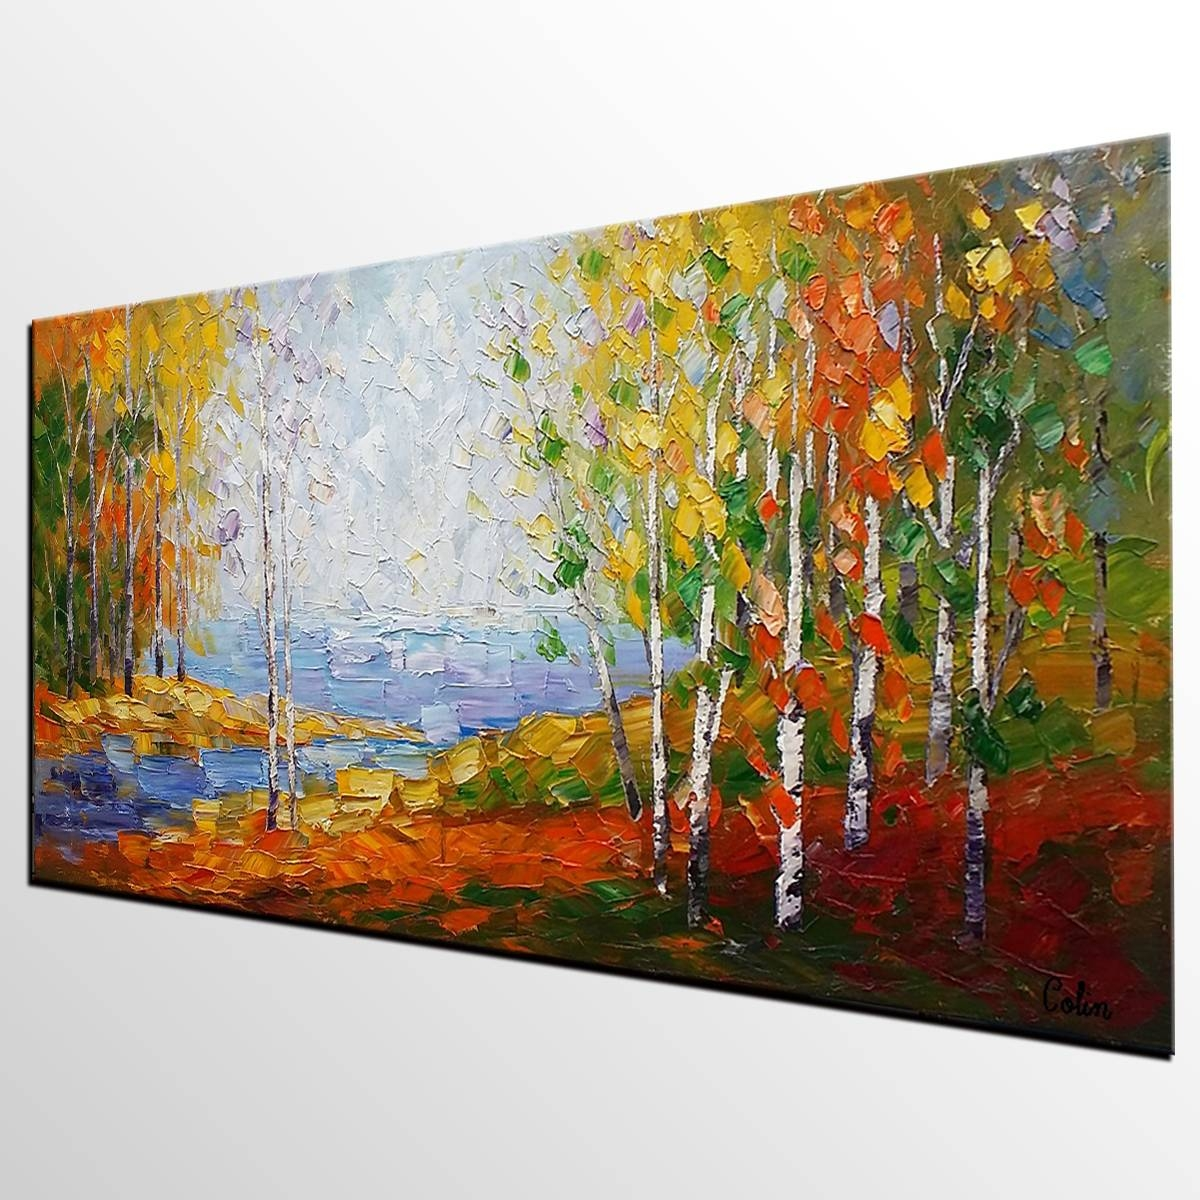 Canvas Painting, Bedroom Wall Art, Landscape Painting, Large Art Regarding 2018 Canvas Landscape Wall Art (View 18 of 20)